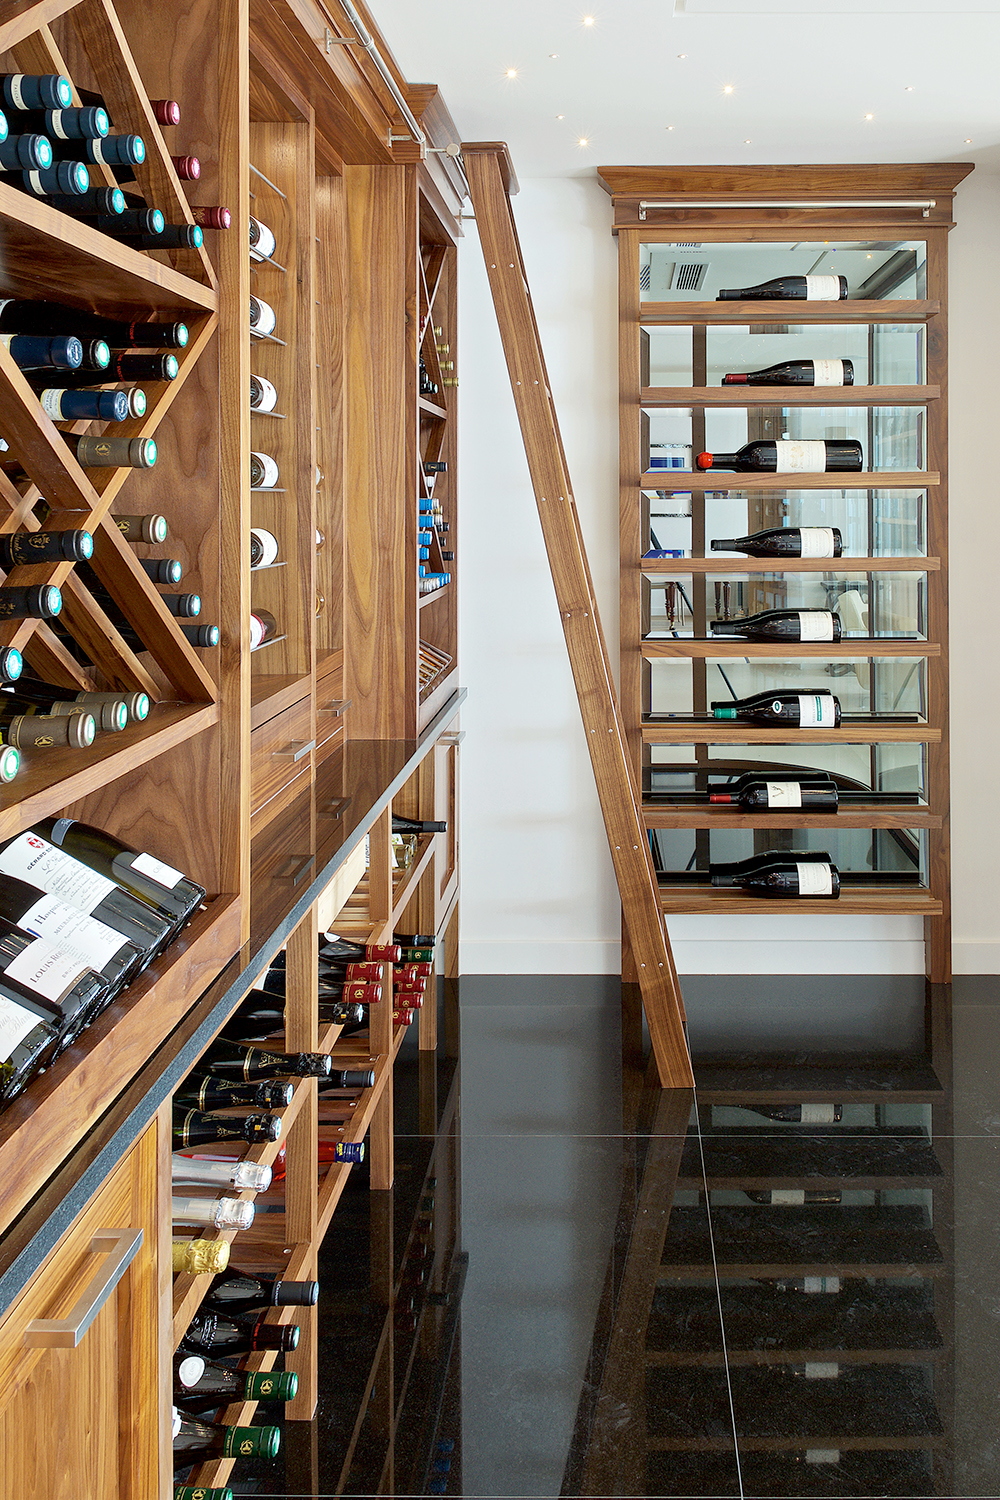 Bespoke wine room with shelving and racks made from solid American oak with sliding ladder on rail and Caesarstone Piatra Grey worktops.